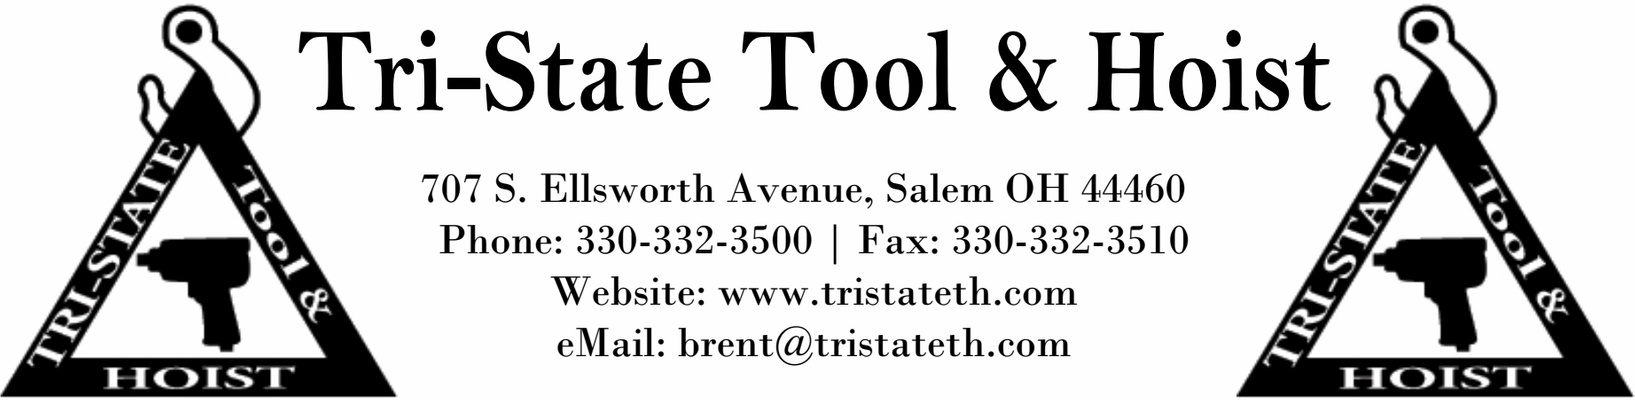 Tri State Tool and Hoist, Inc.